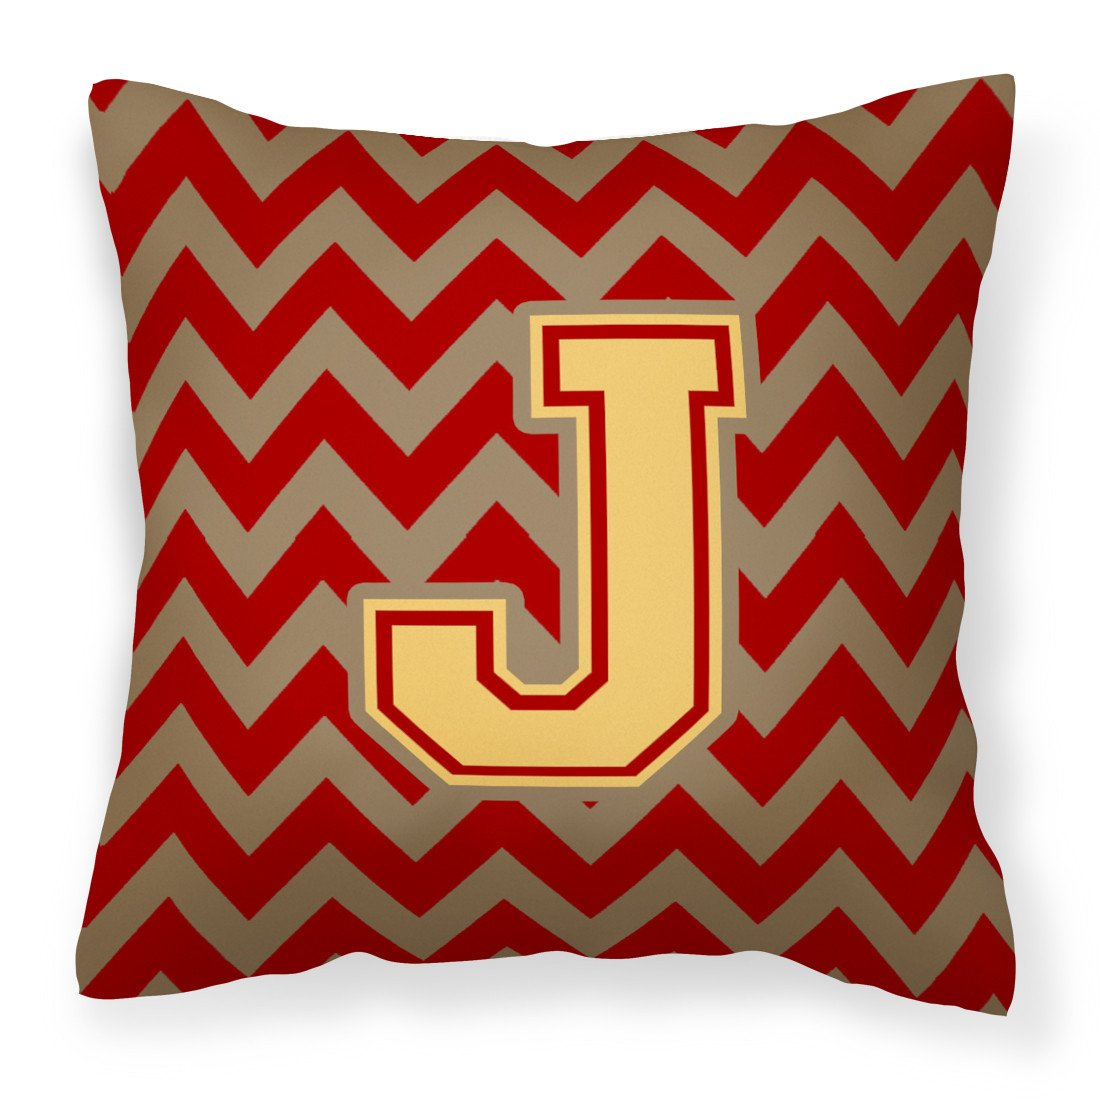 Letter J Chevron Garnet and Gold  Fabric Decorative Pillow CJ1048-JPW1414 by Caroline's Treasures